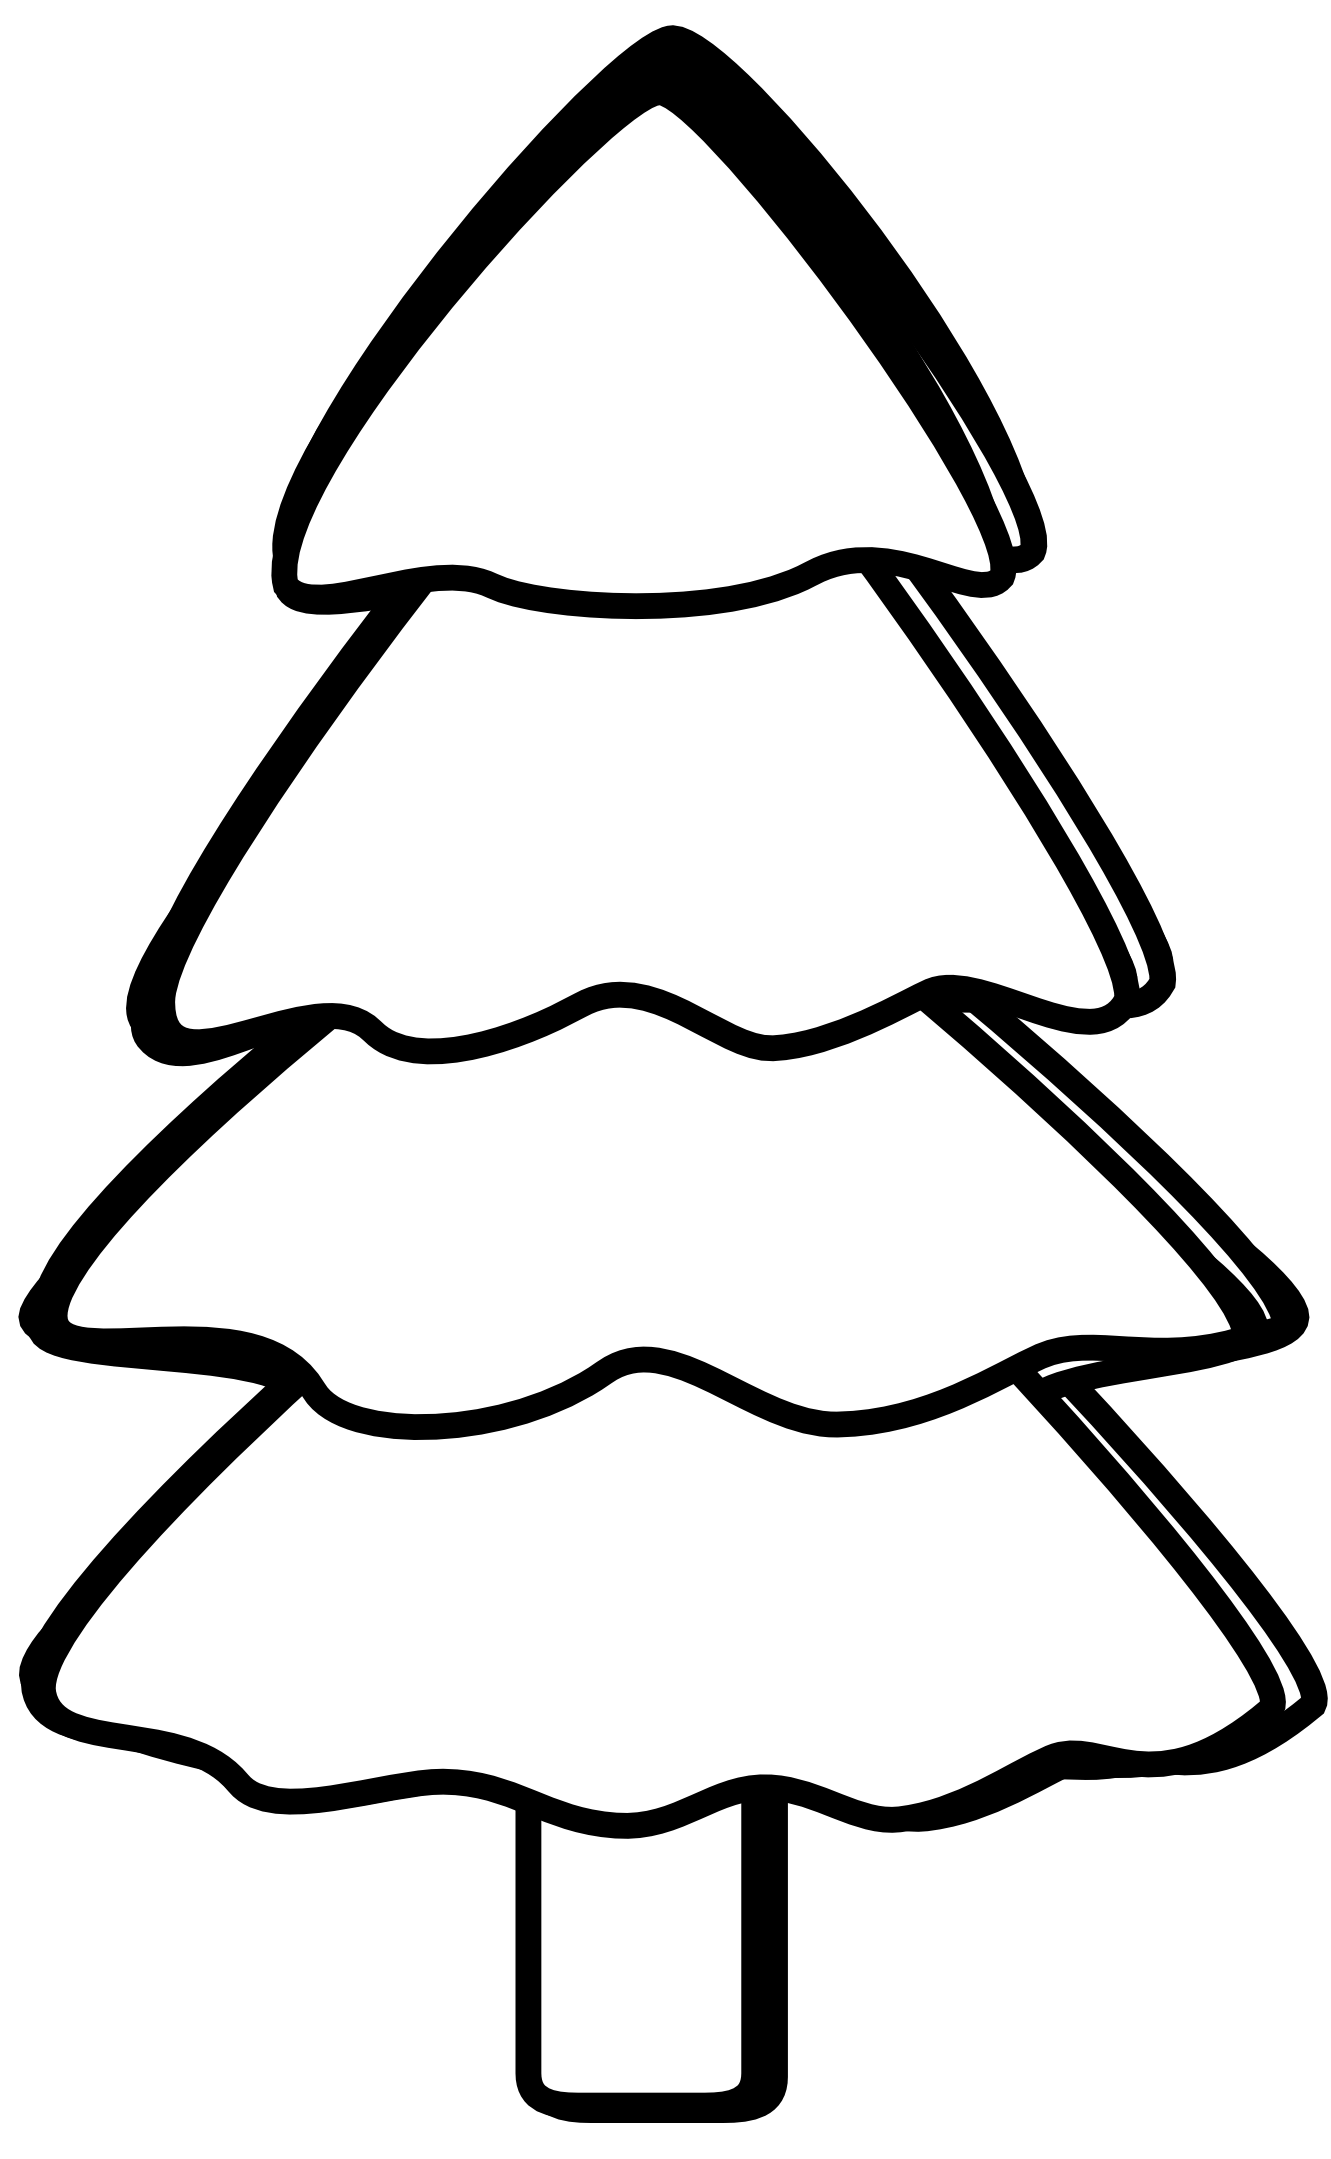 Simple Black And White Tree Clipart Panda